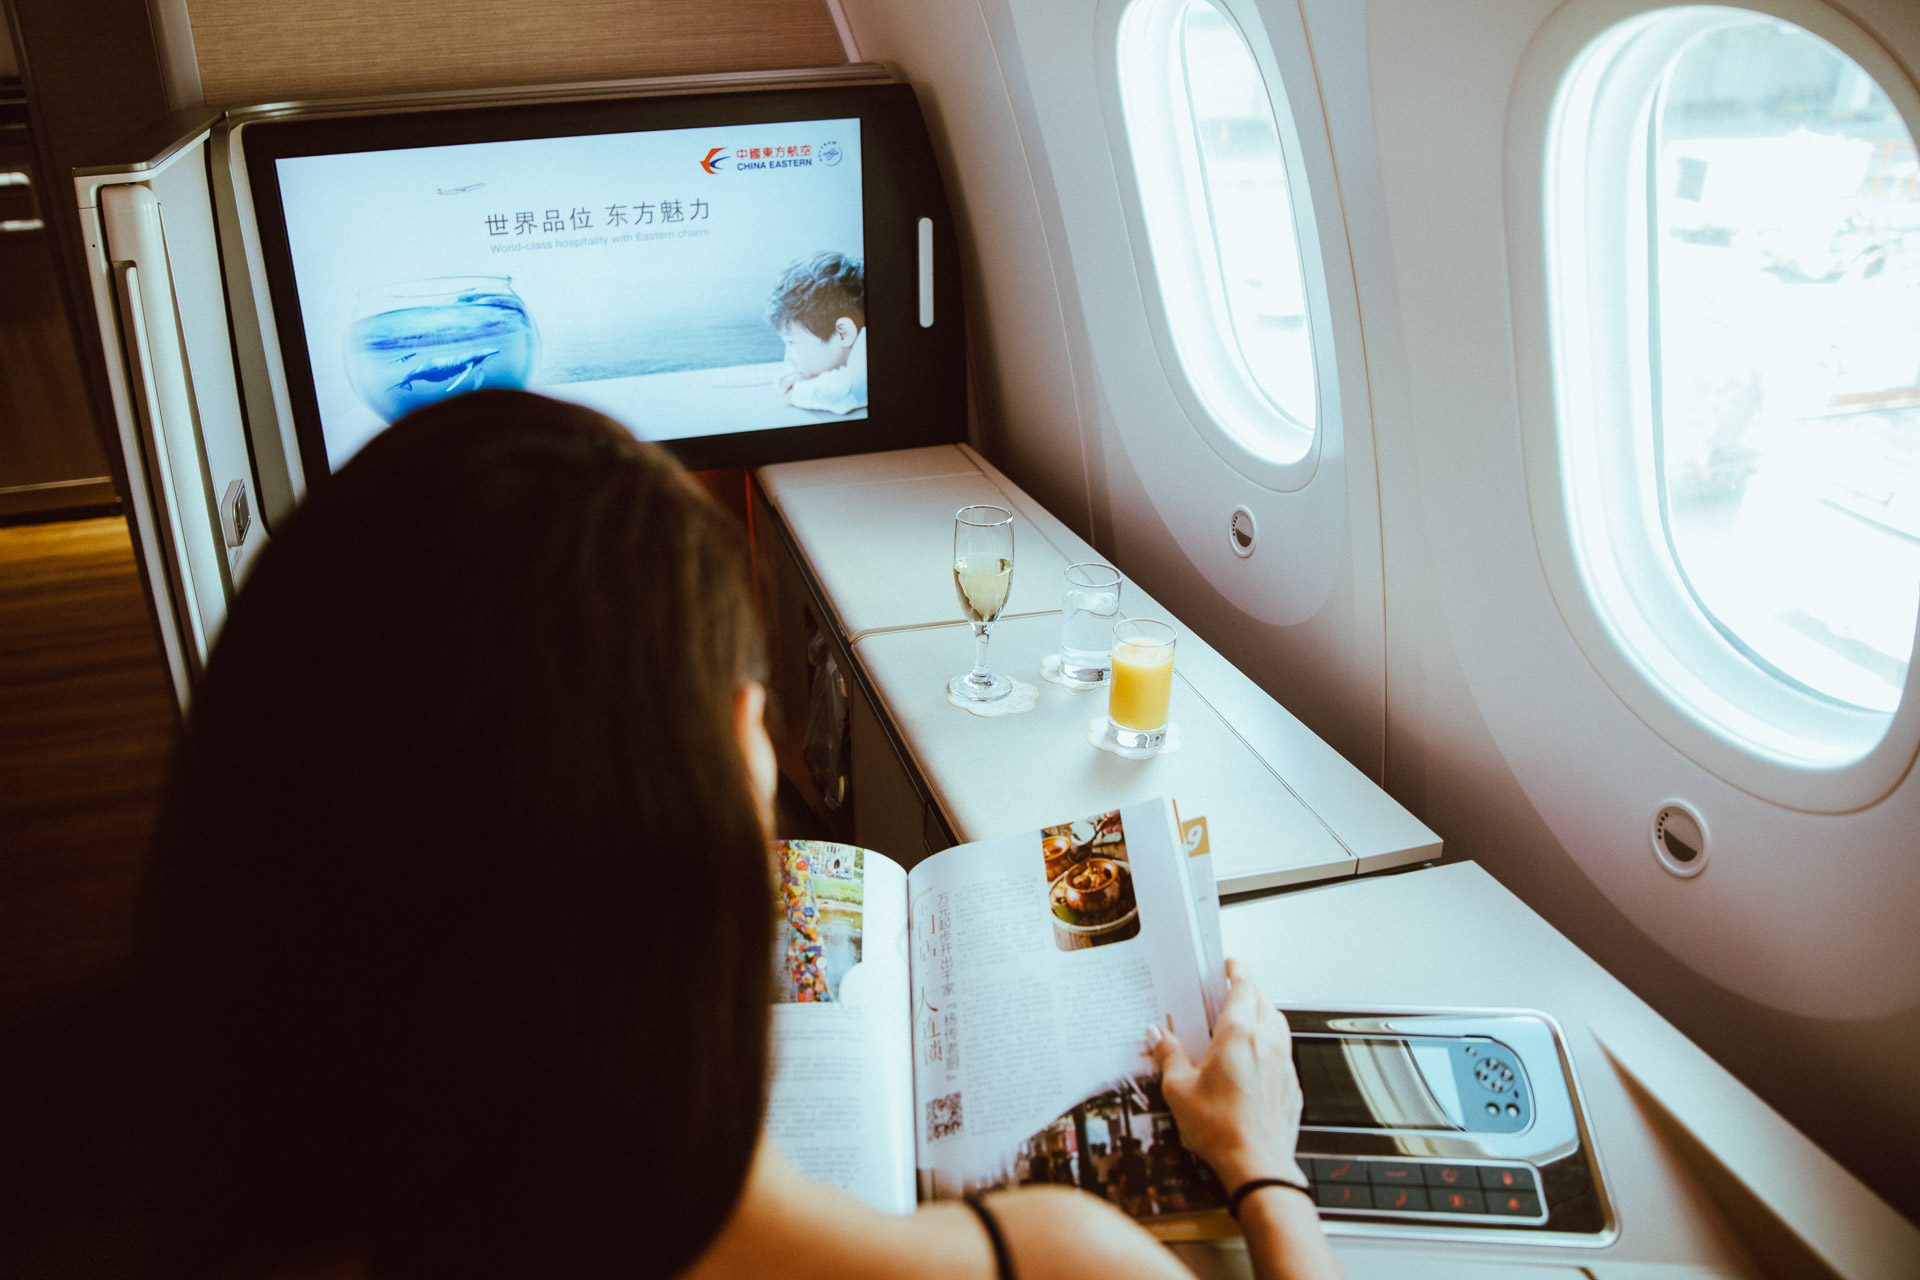 Singapore - commissioned for China Eastern airlines